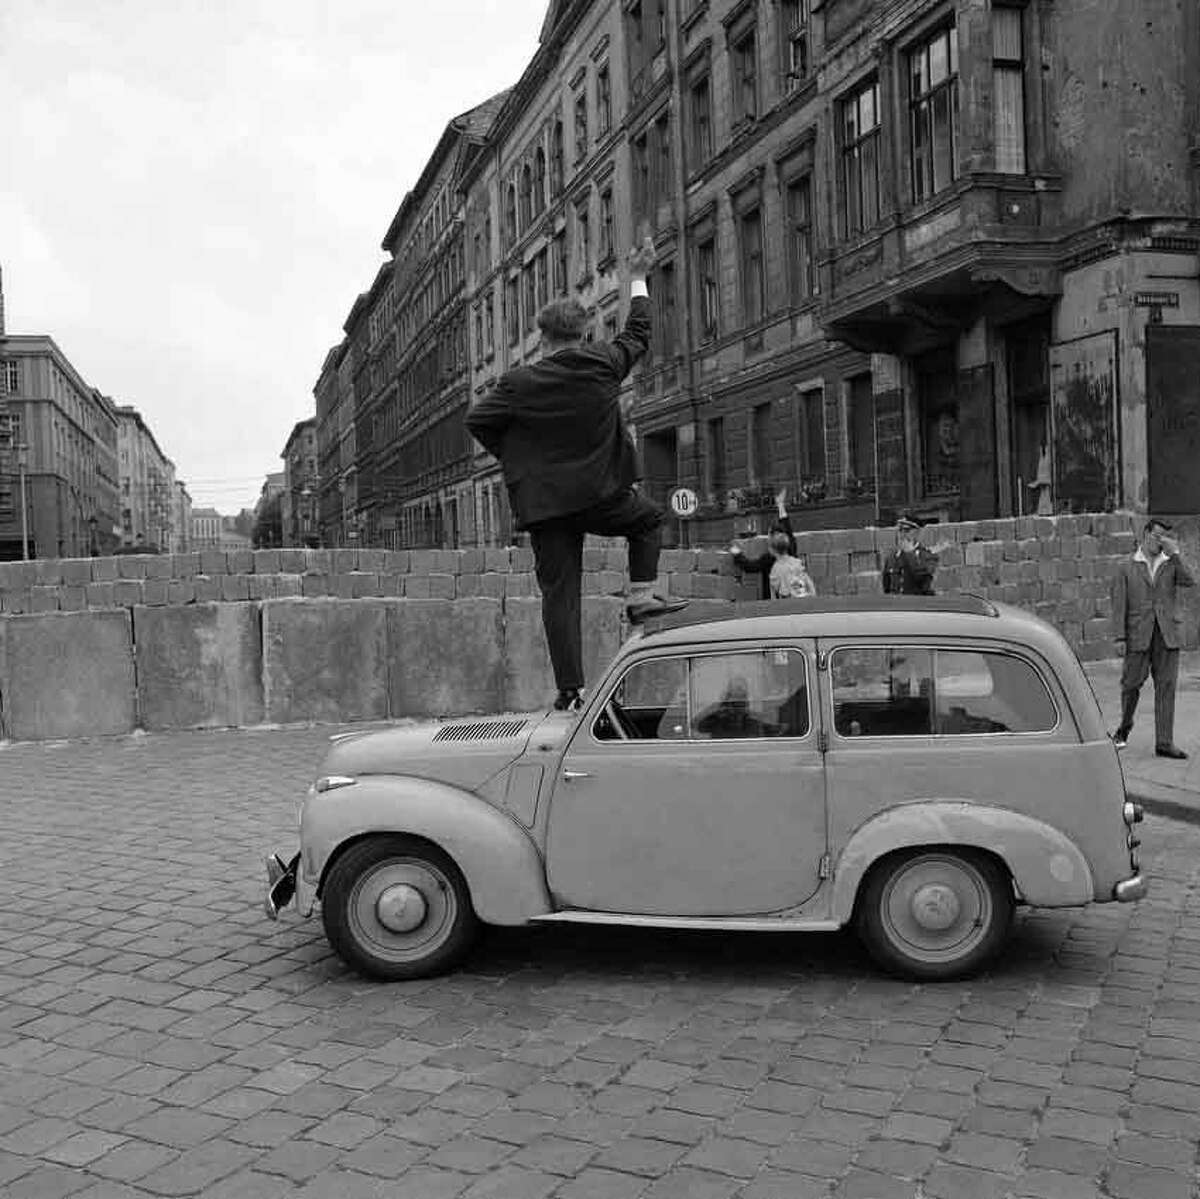 Stone wall doesnít stop curious West Berliners from viewing the Eastern part of the city. Communists put up wall to keep people in the Eastern sector. An auto-mobile used by man to overcome height of problem in Berlin August 28, 1961. (AP Photo/Worth)